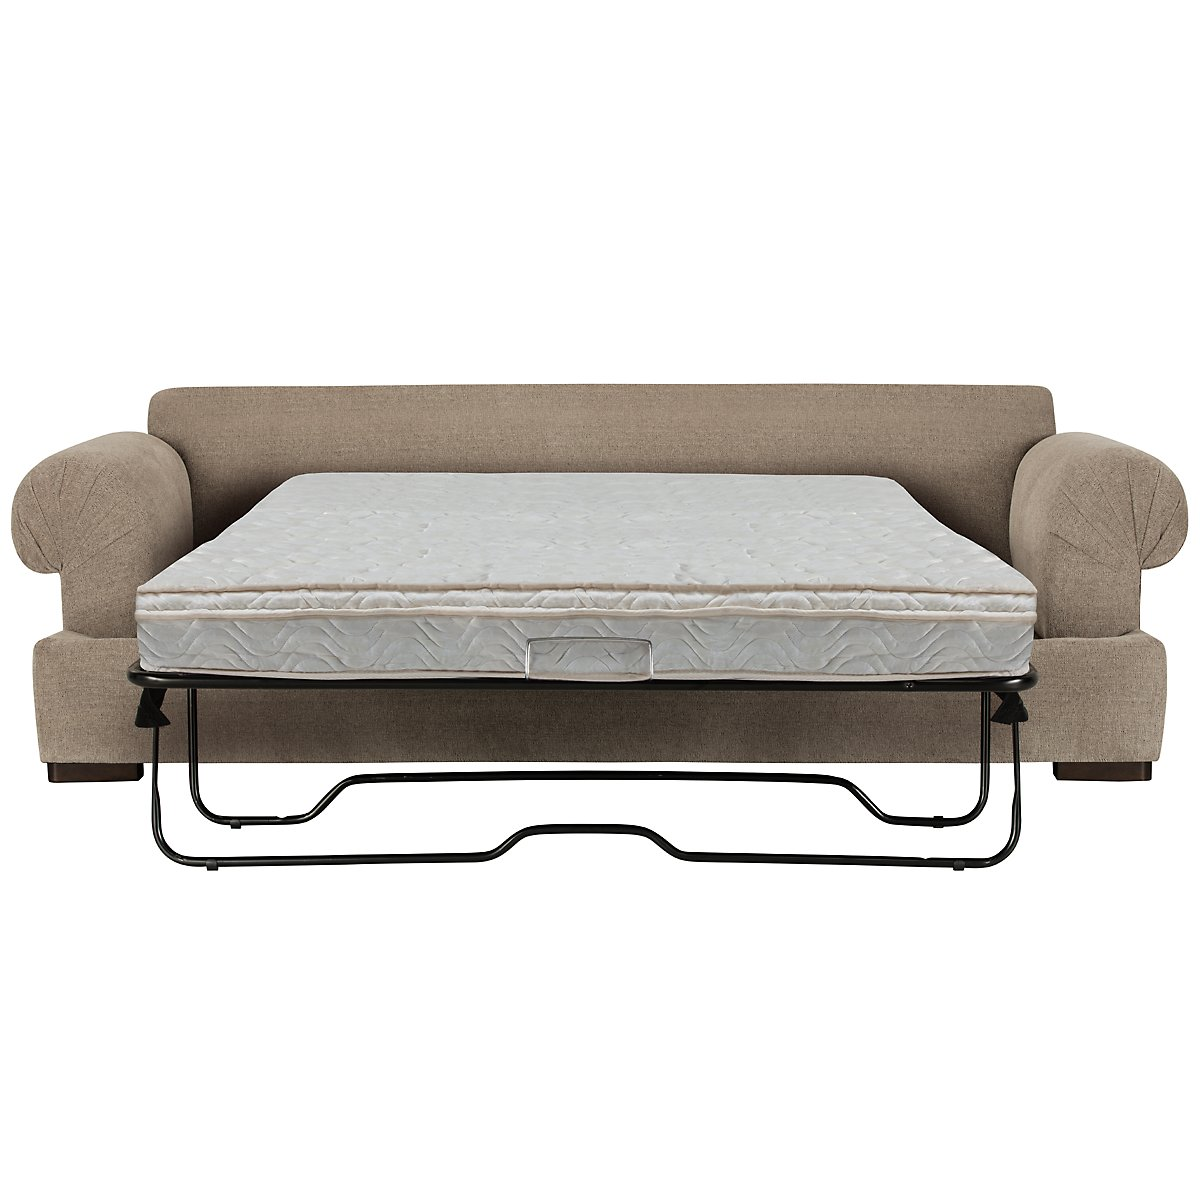 Belair Dark Taupe Fabric Innerspring Sleeper